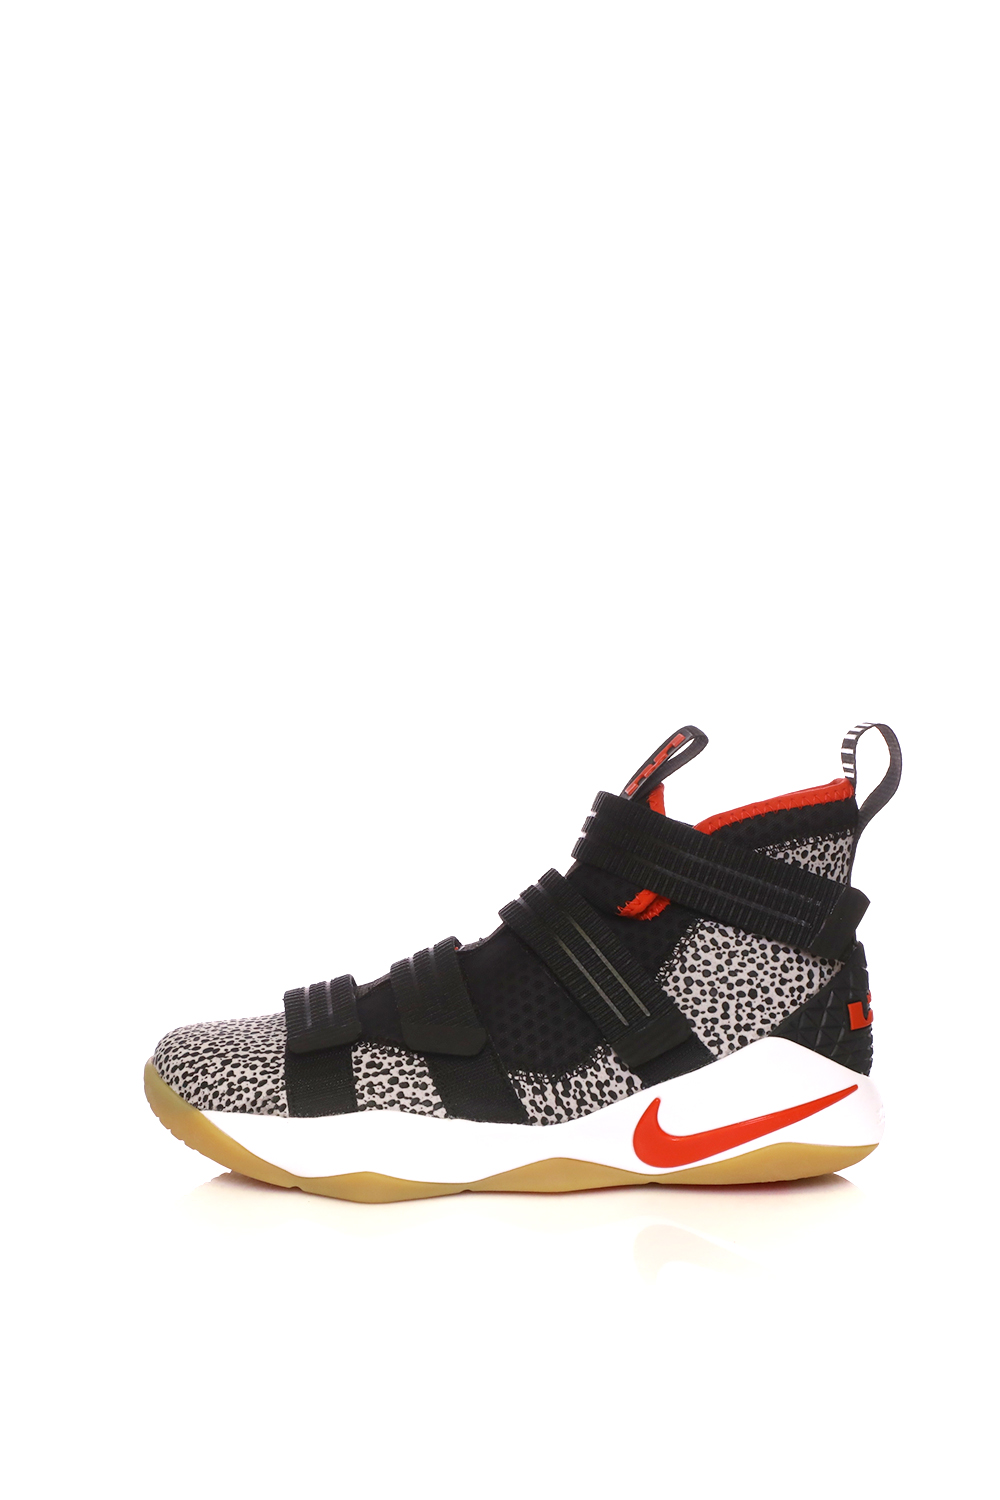 84bddbec5f -30% Factory Outlet NIKE – Ανδρικά παπούτσια μπάσκετ NIKE LEBRON SOLDIER XI  SFG